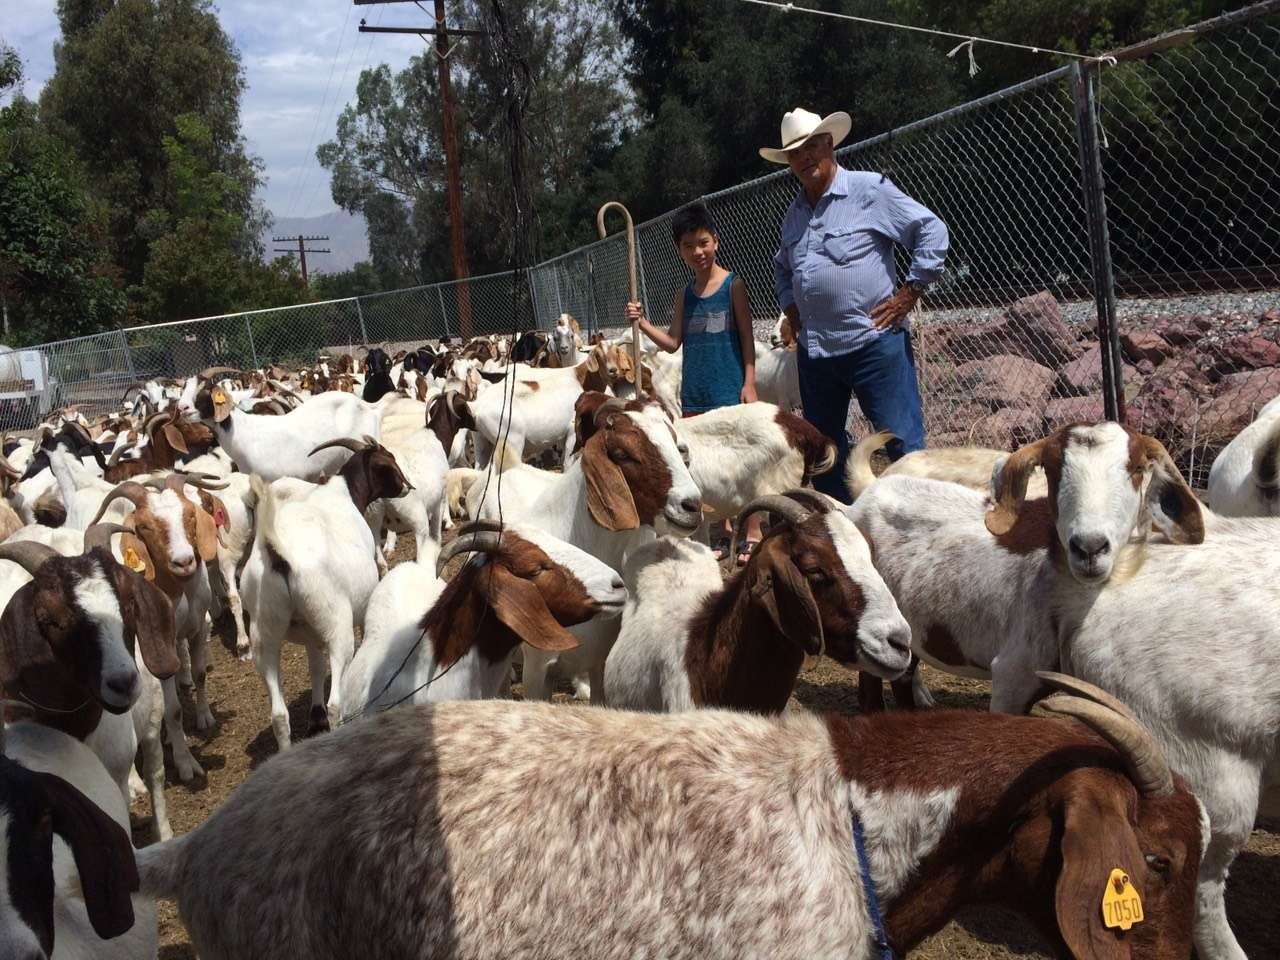 Weed-eating goats reduce fire risks in Southern California